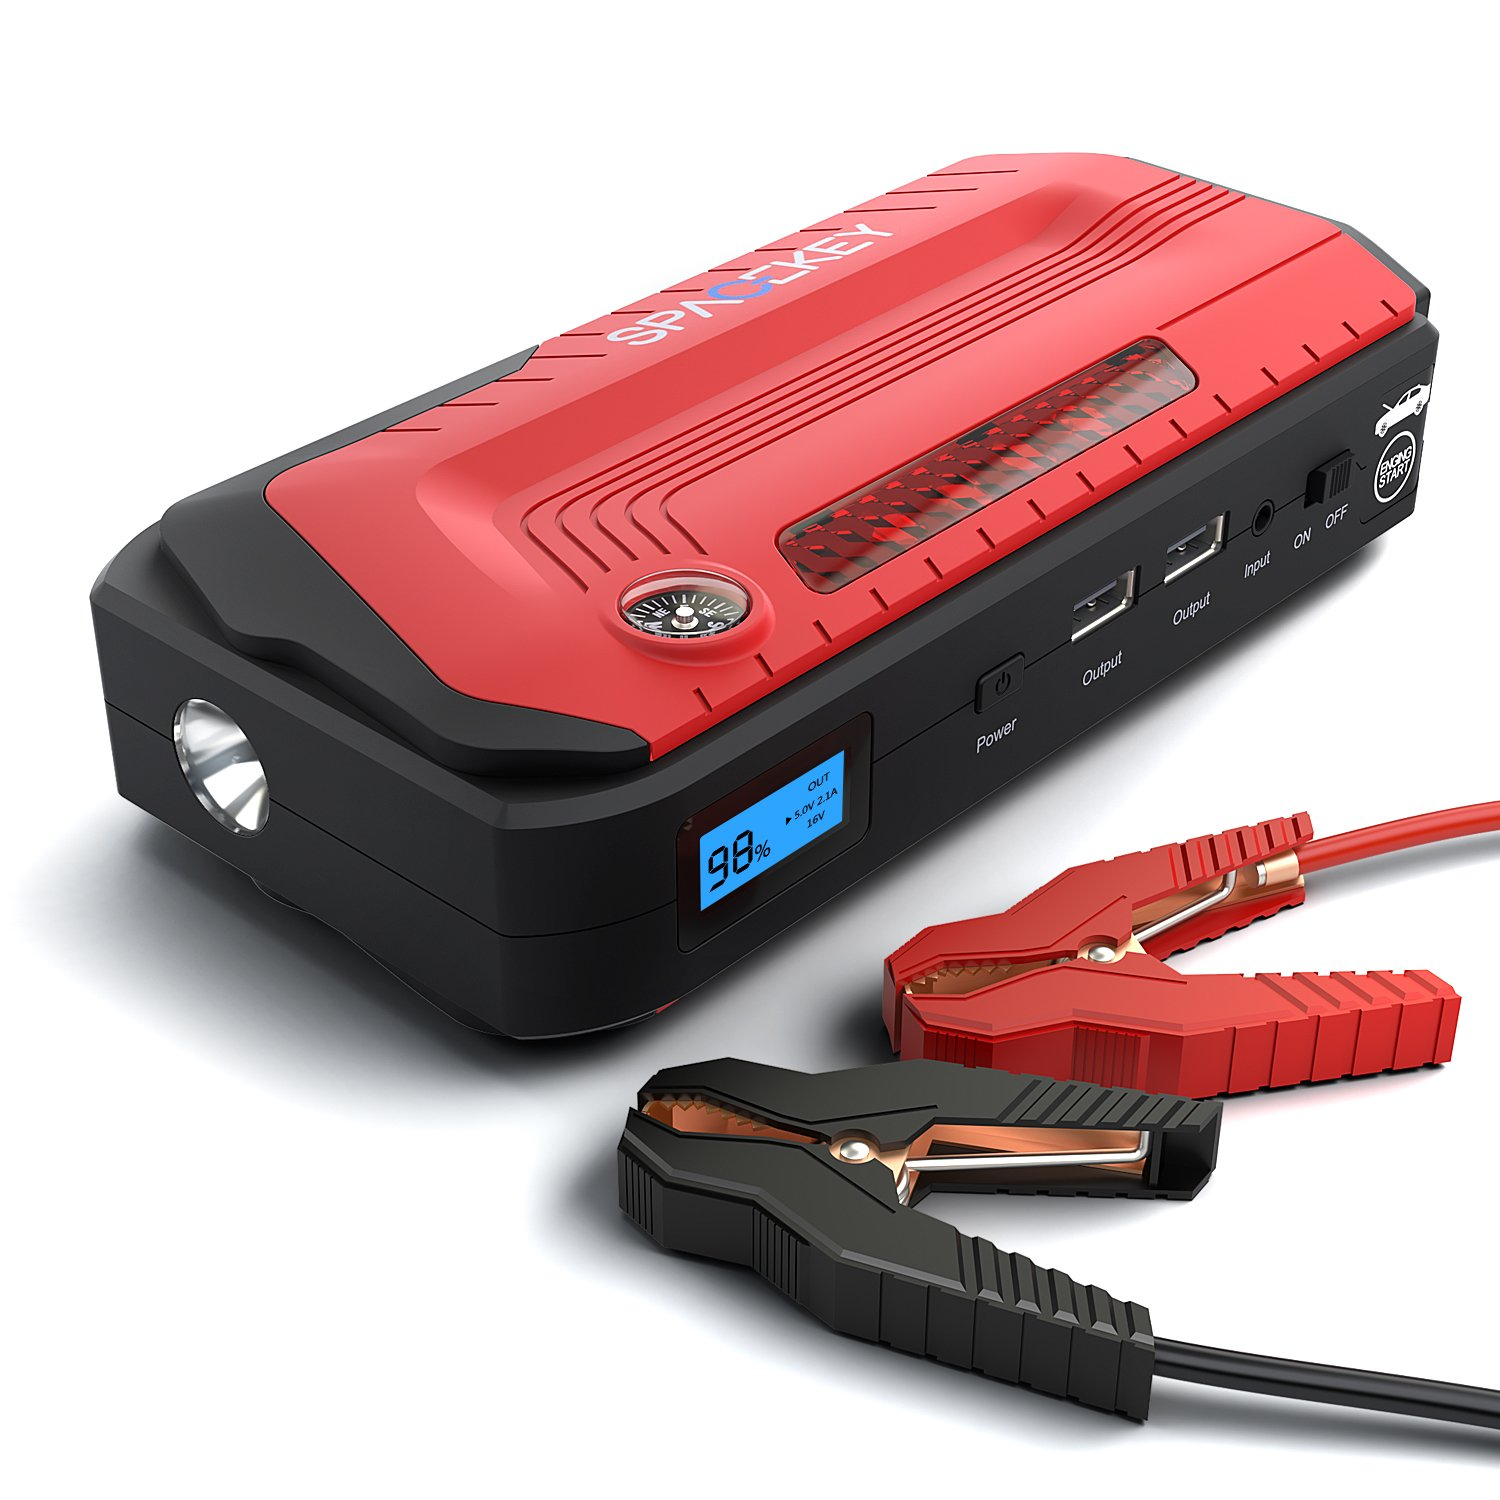 Powerful Jump Starter-1200A Peak (2018 Upgraded) By Spacekey – Portable Car Jump Starter, Auto Battery Pack, Booster Charger With QC3.0 Output And LED Flashlight